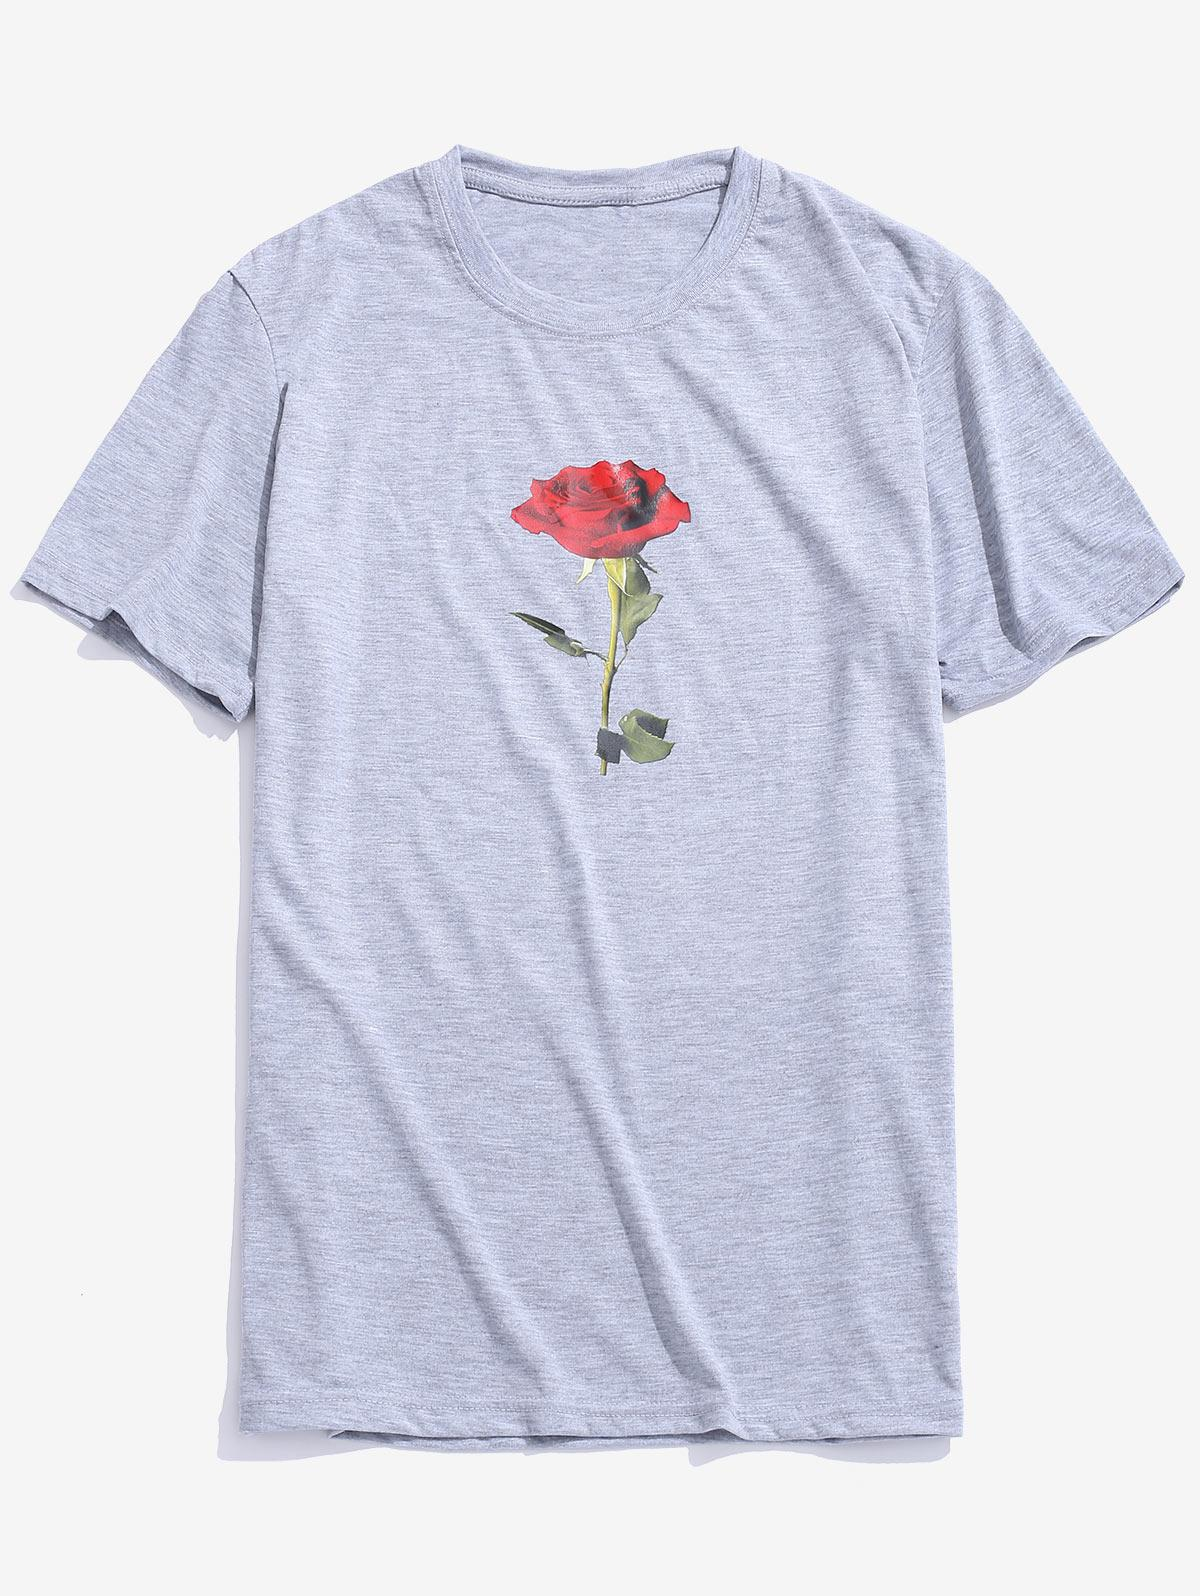 Rose Short Sleeves Valentine Day Top фото